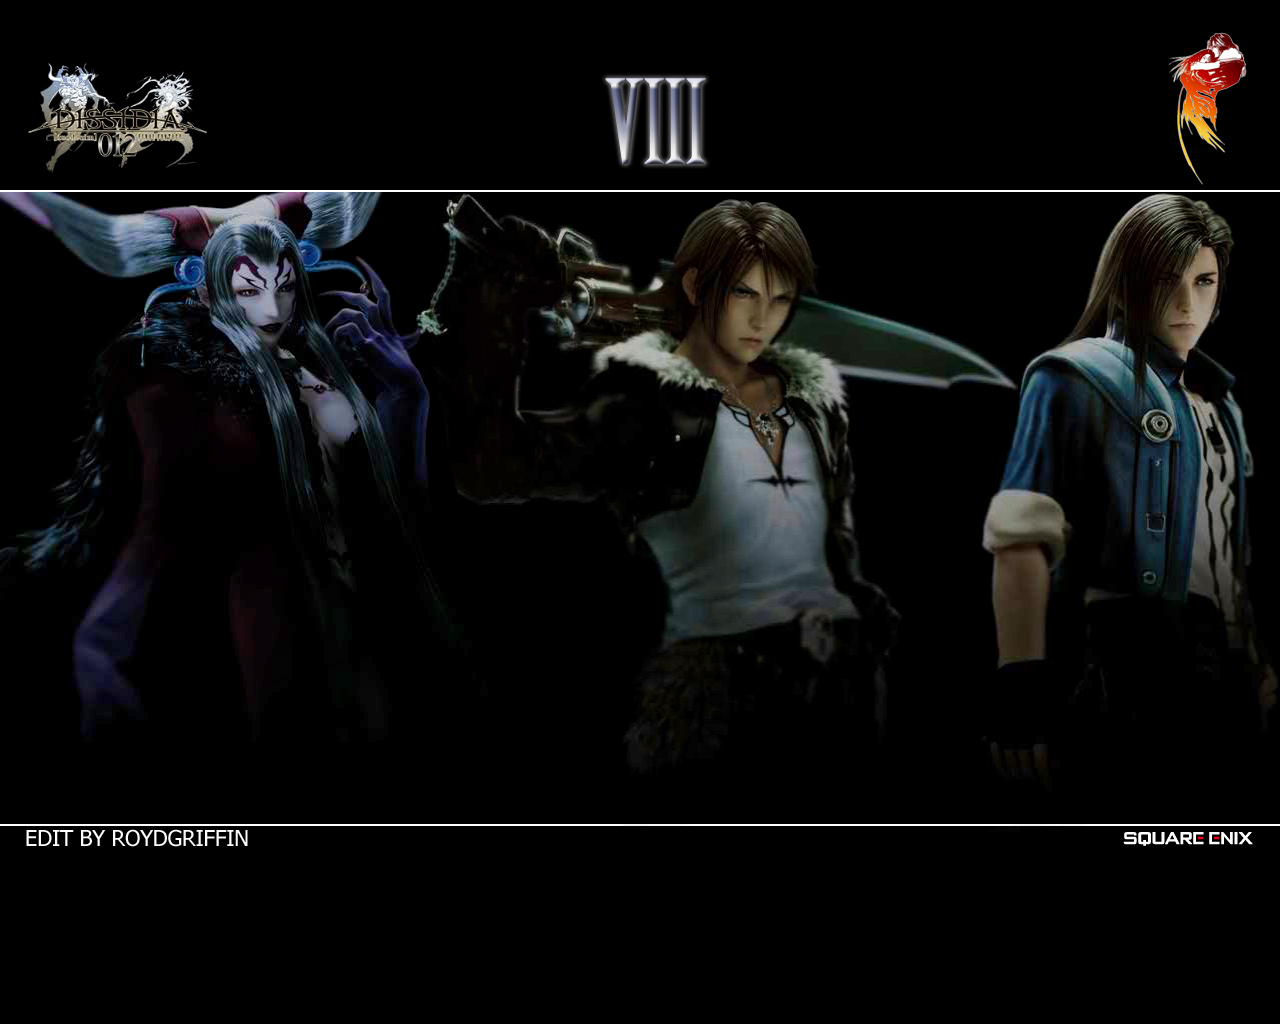 Final Fantasy VIII wallpaper 1280x1024